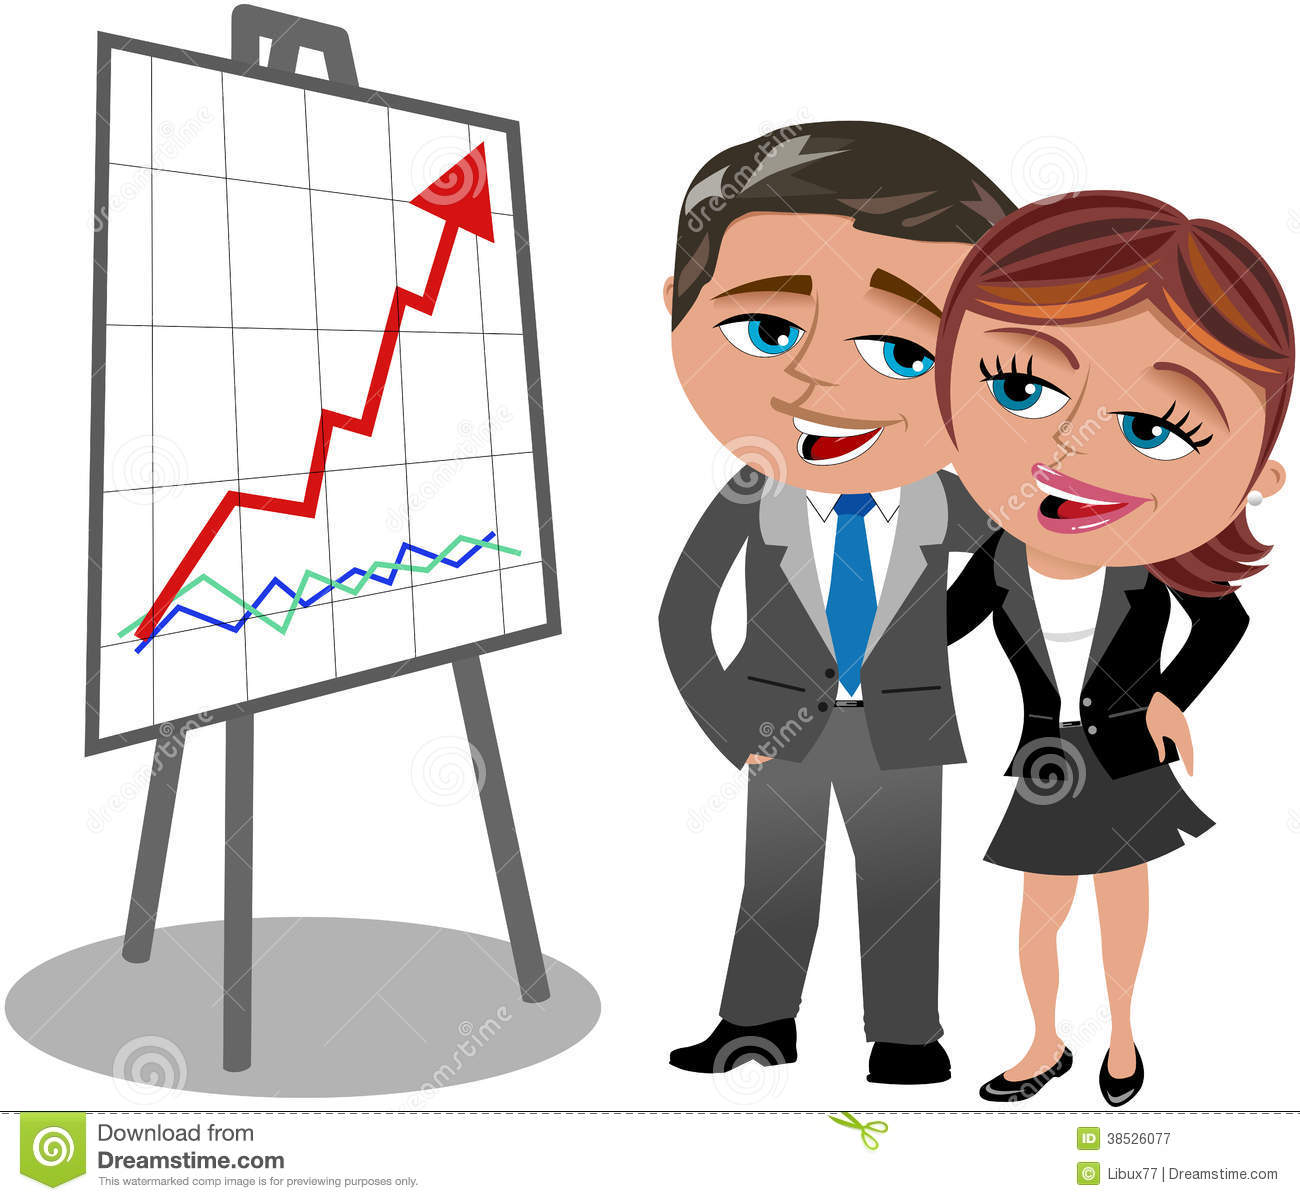 Image result for successful happy woman cartoon pics